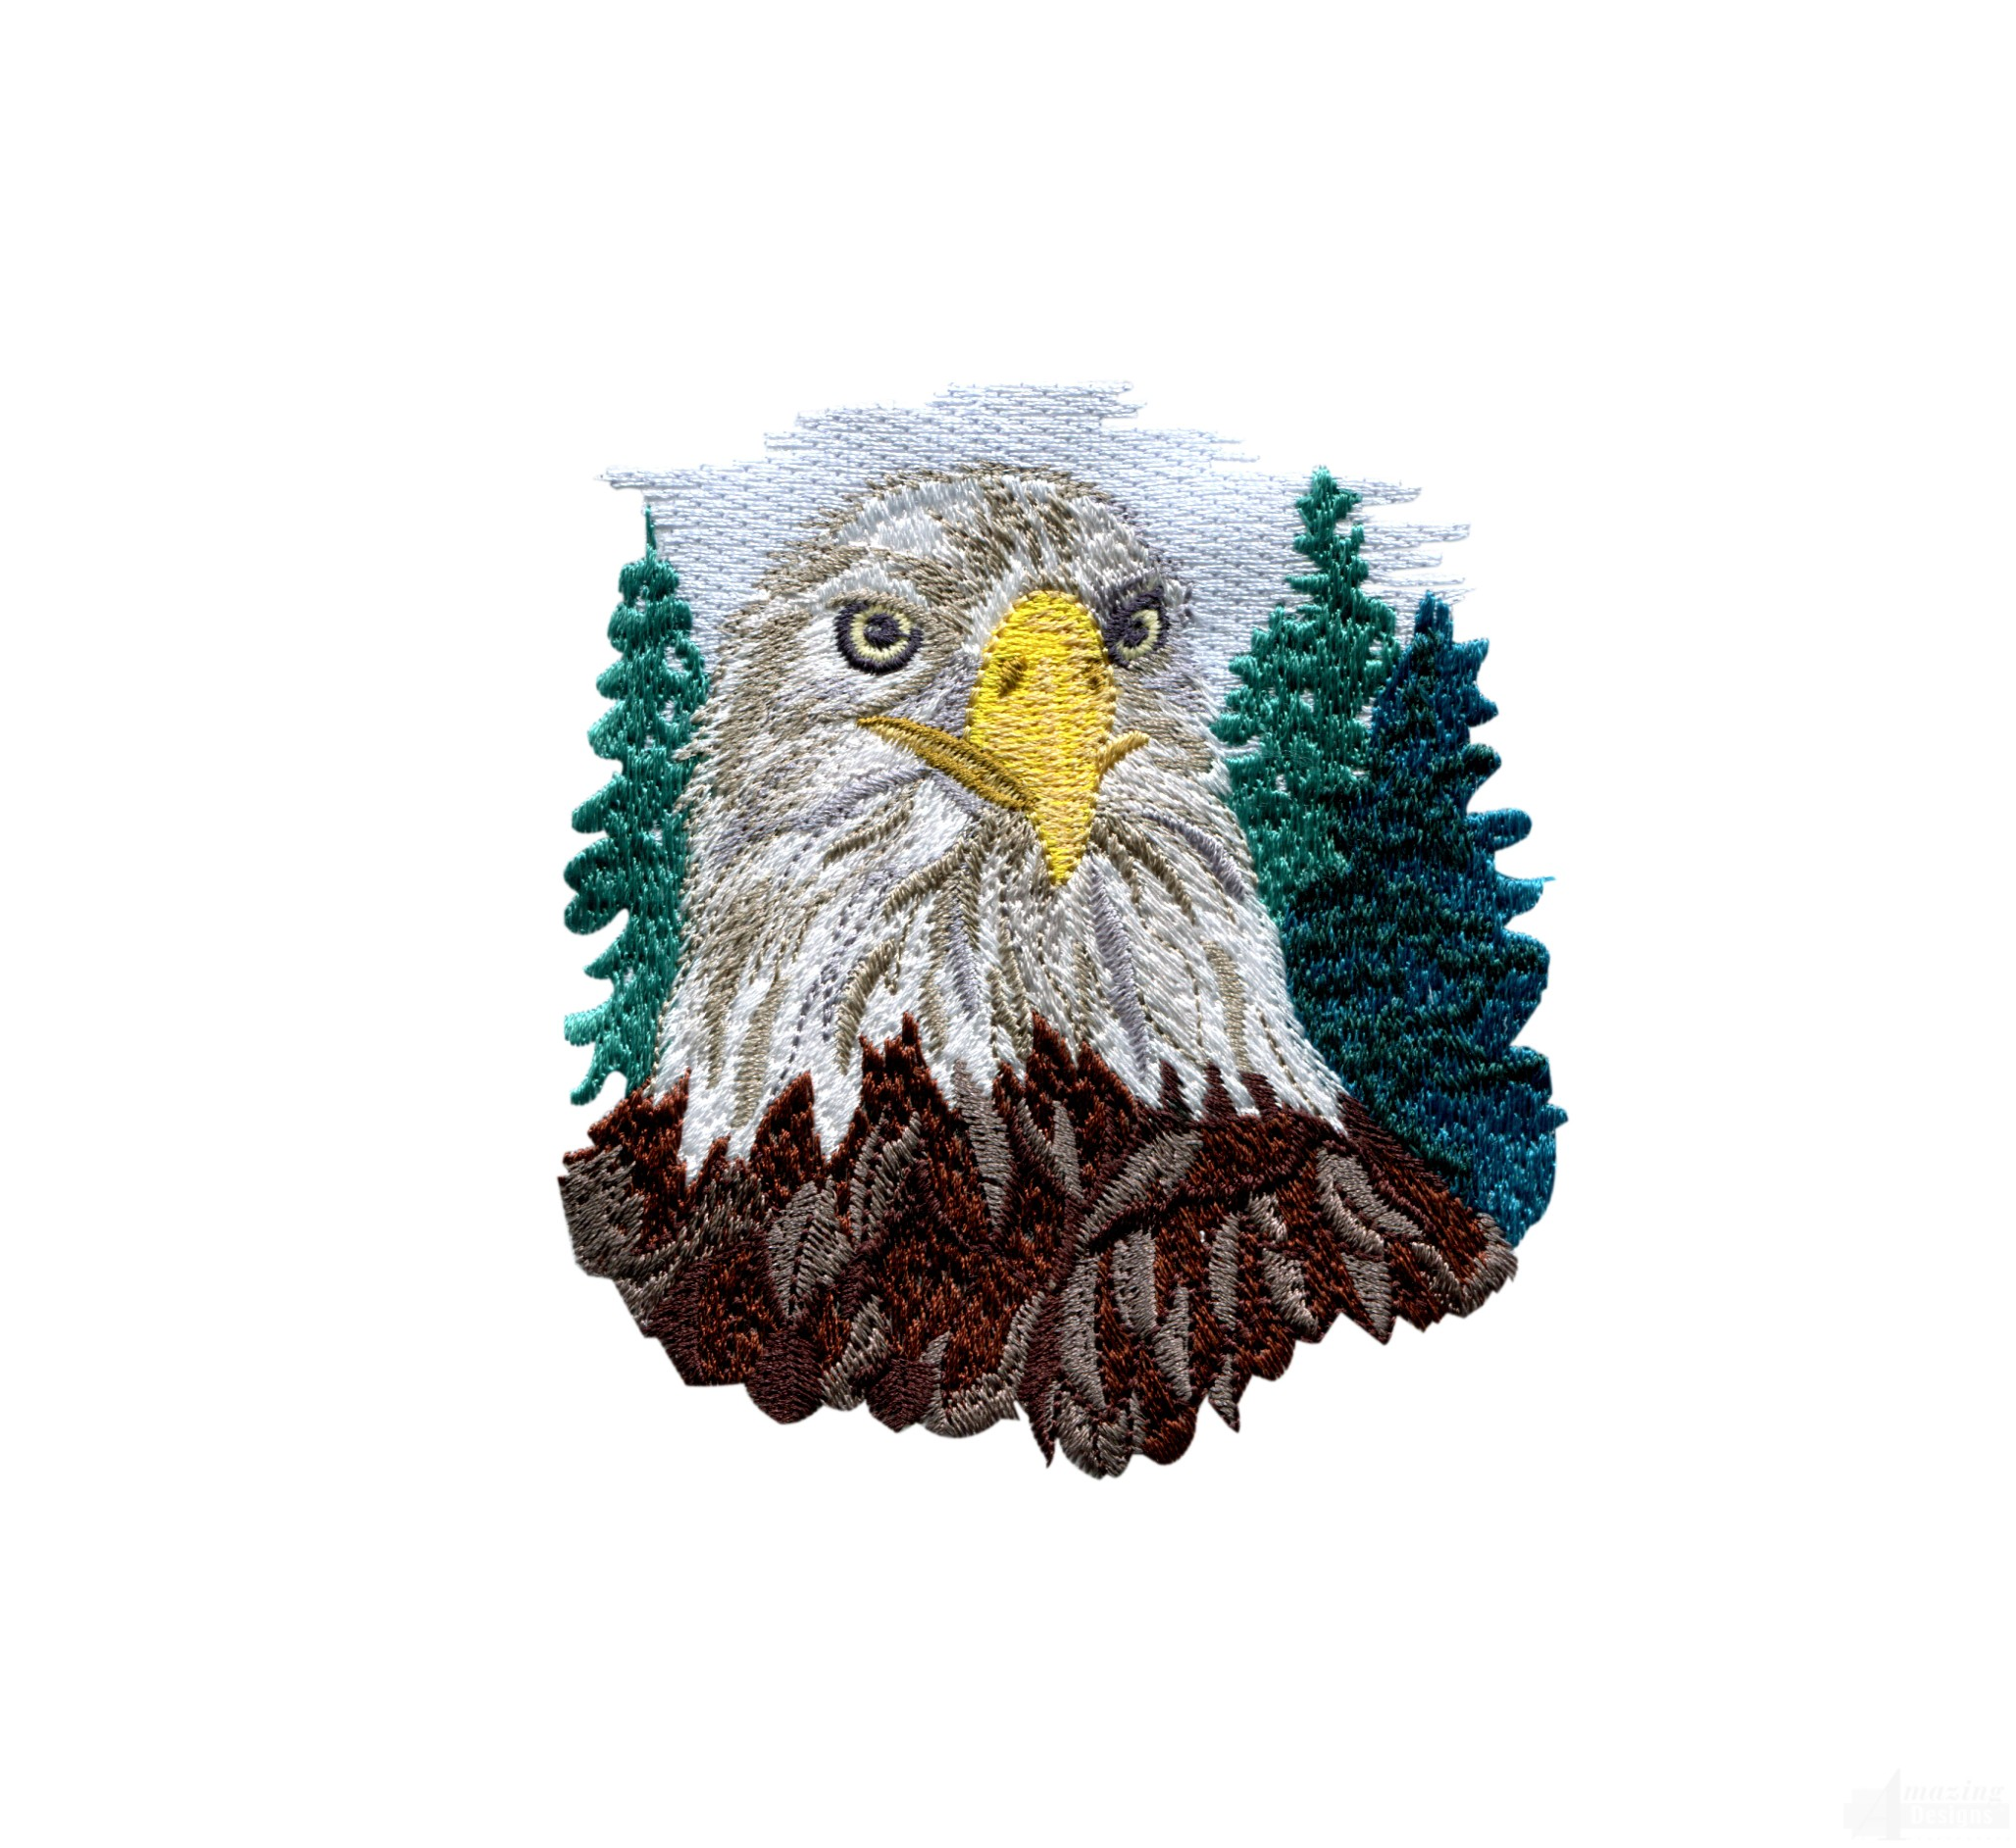 Bald Eagle Head 2 Embroidery Design